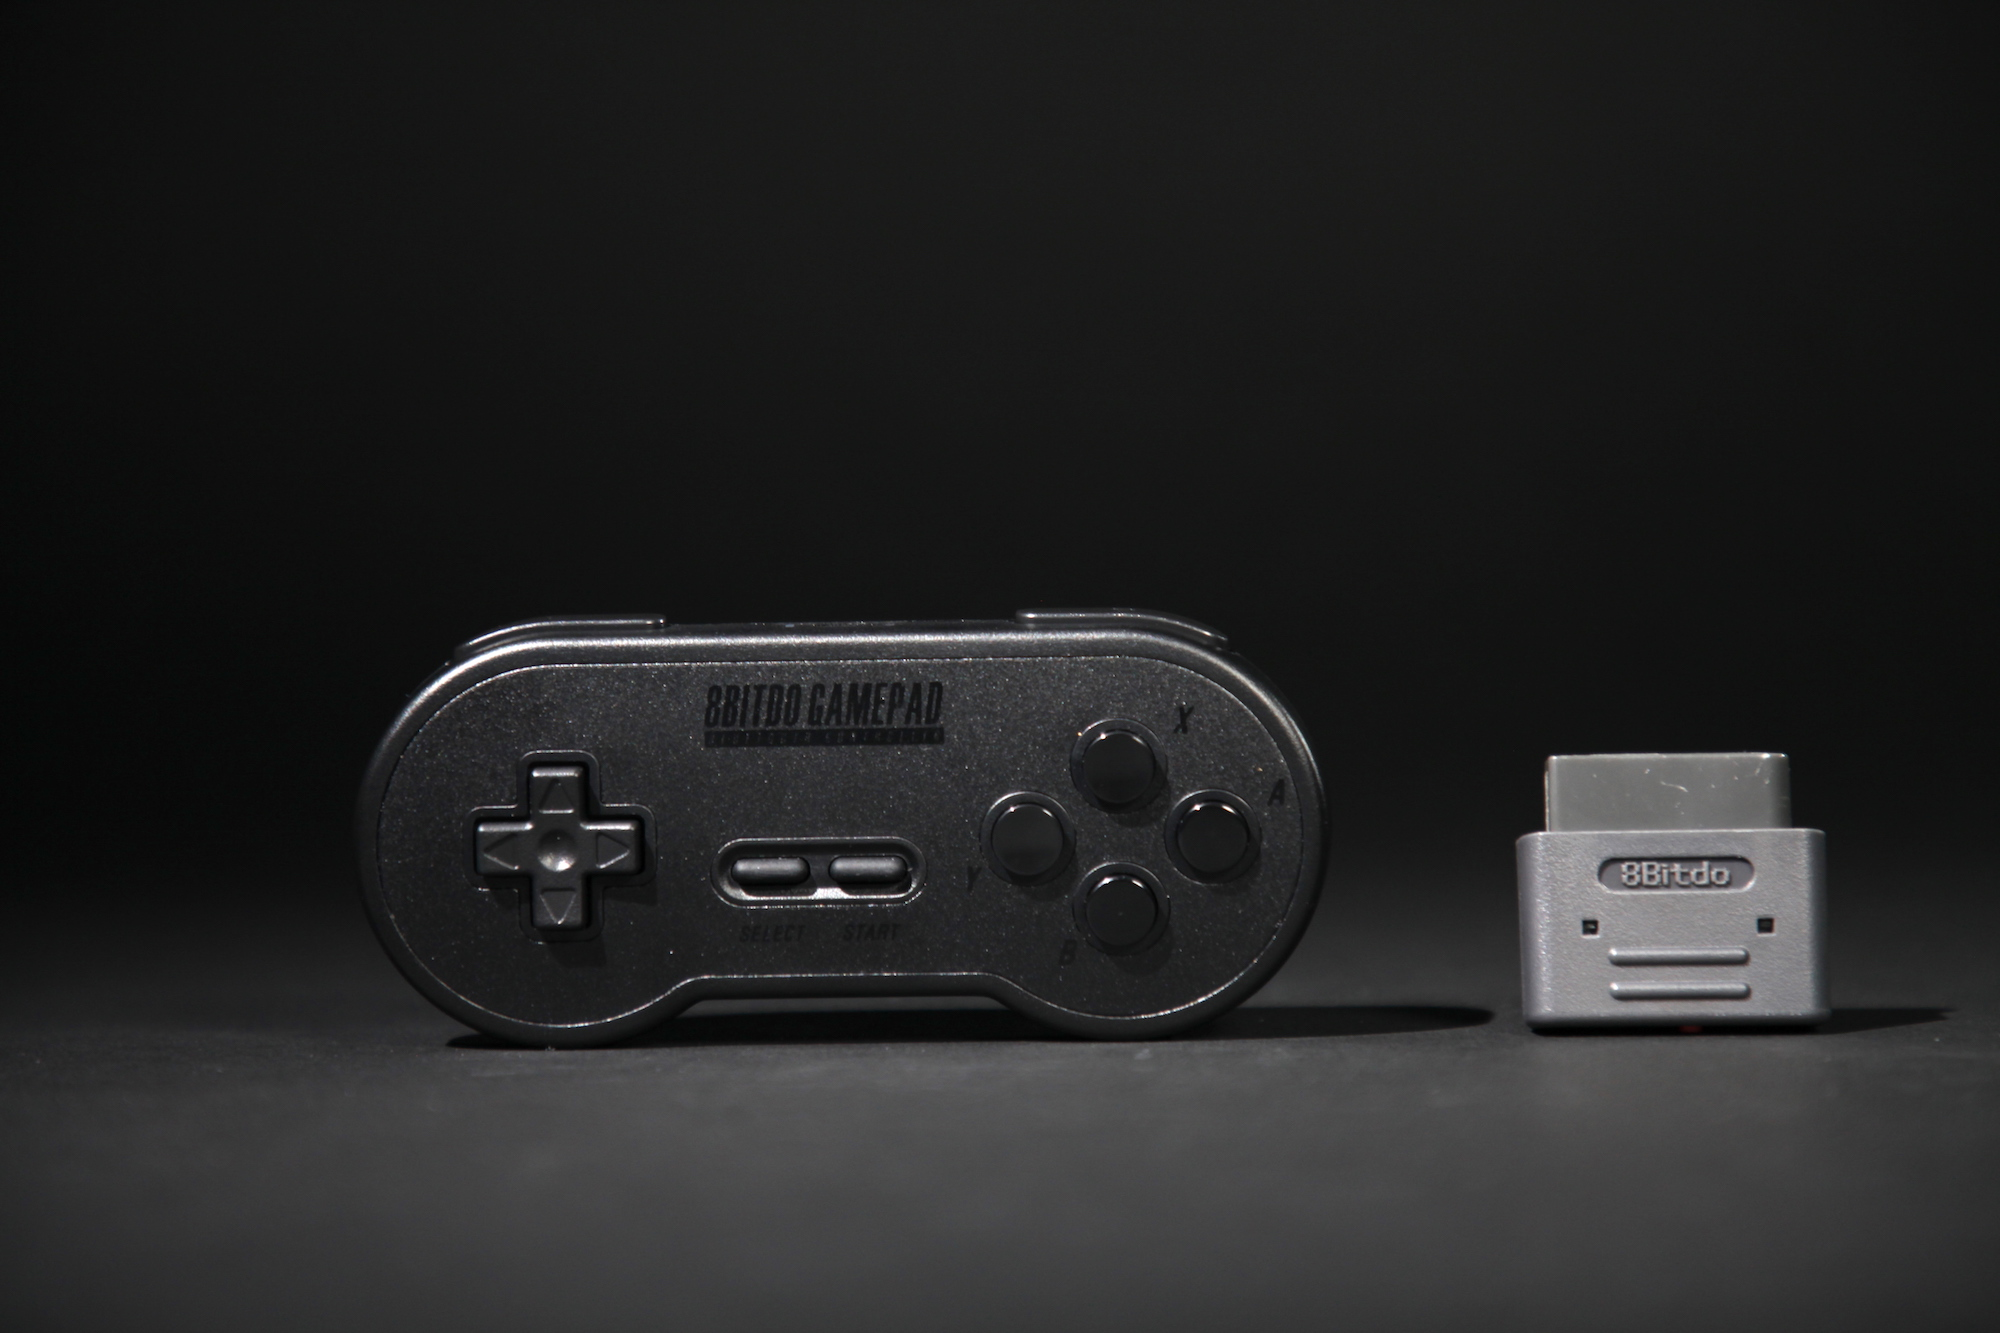 How Analogue Remade The Super Nintendo Polygon Pcbs Found In Traditional Tv Remotes 8bitdo Nt Controller Vox Media